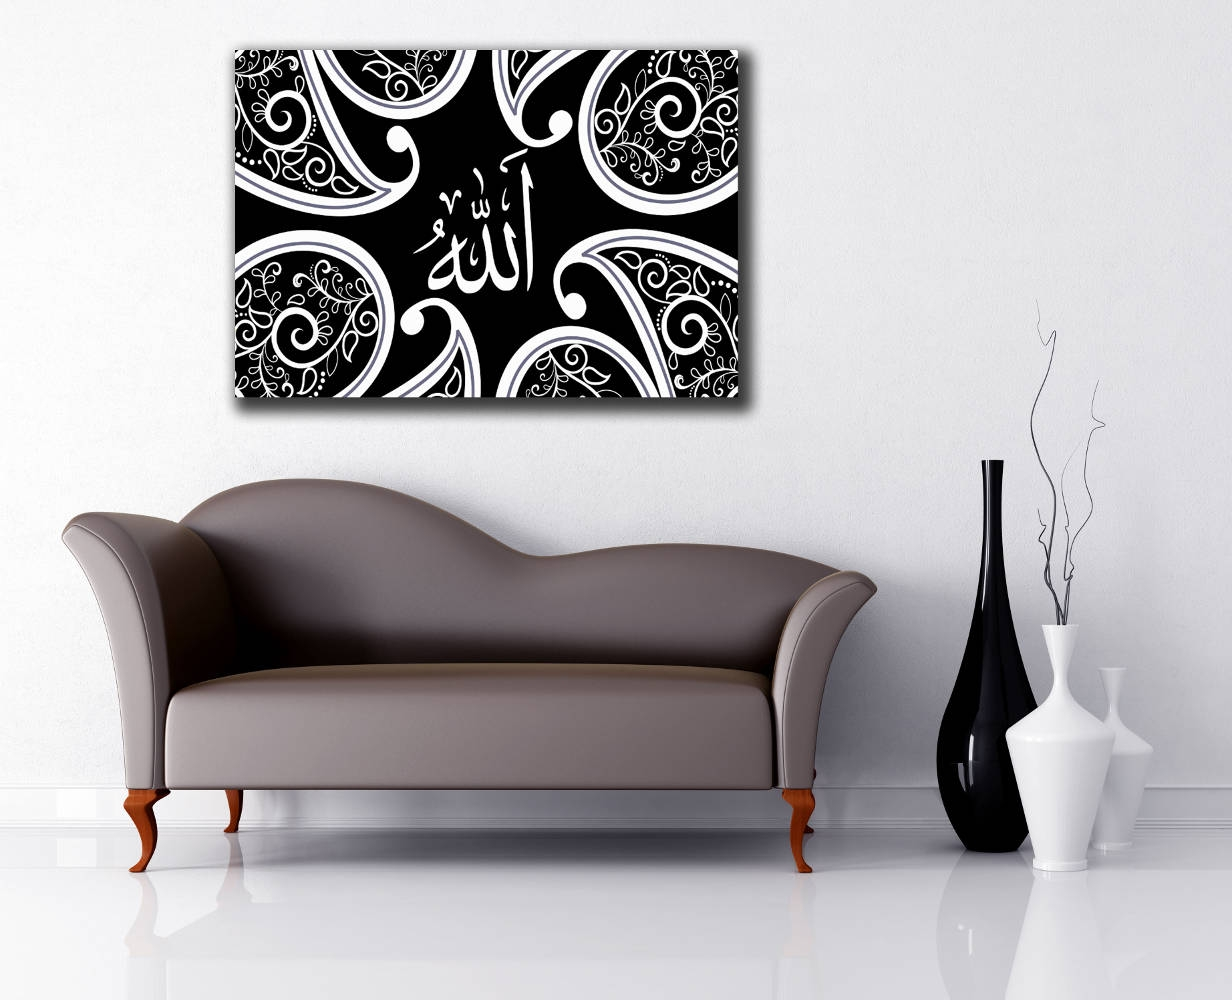 Tableau musulman moderne for Decoration murale islamique